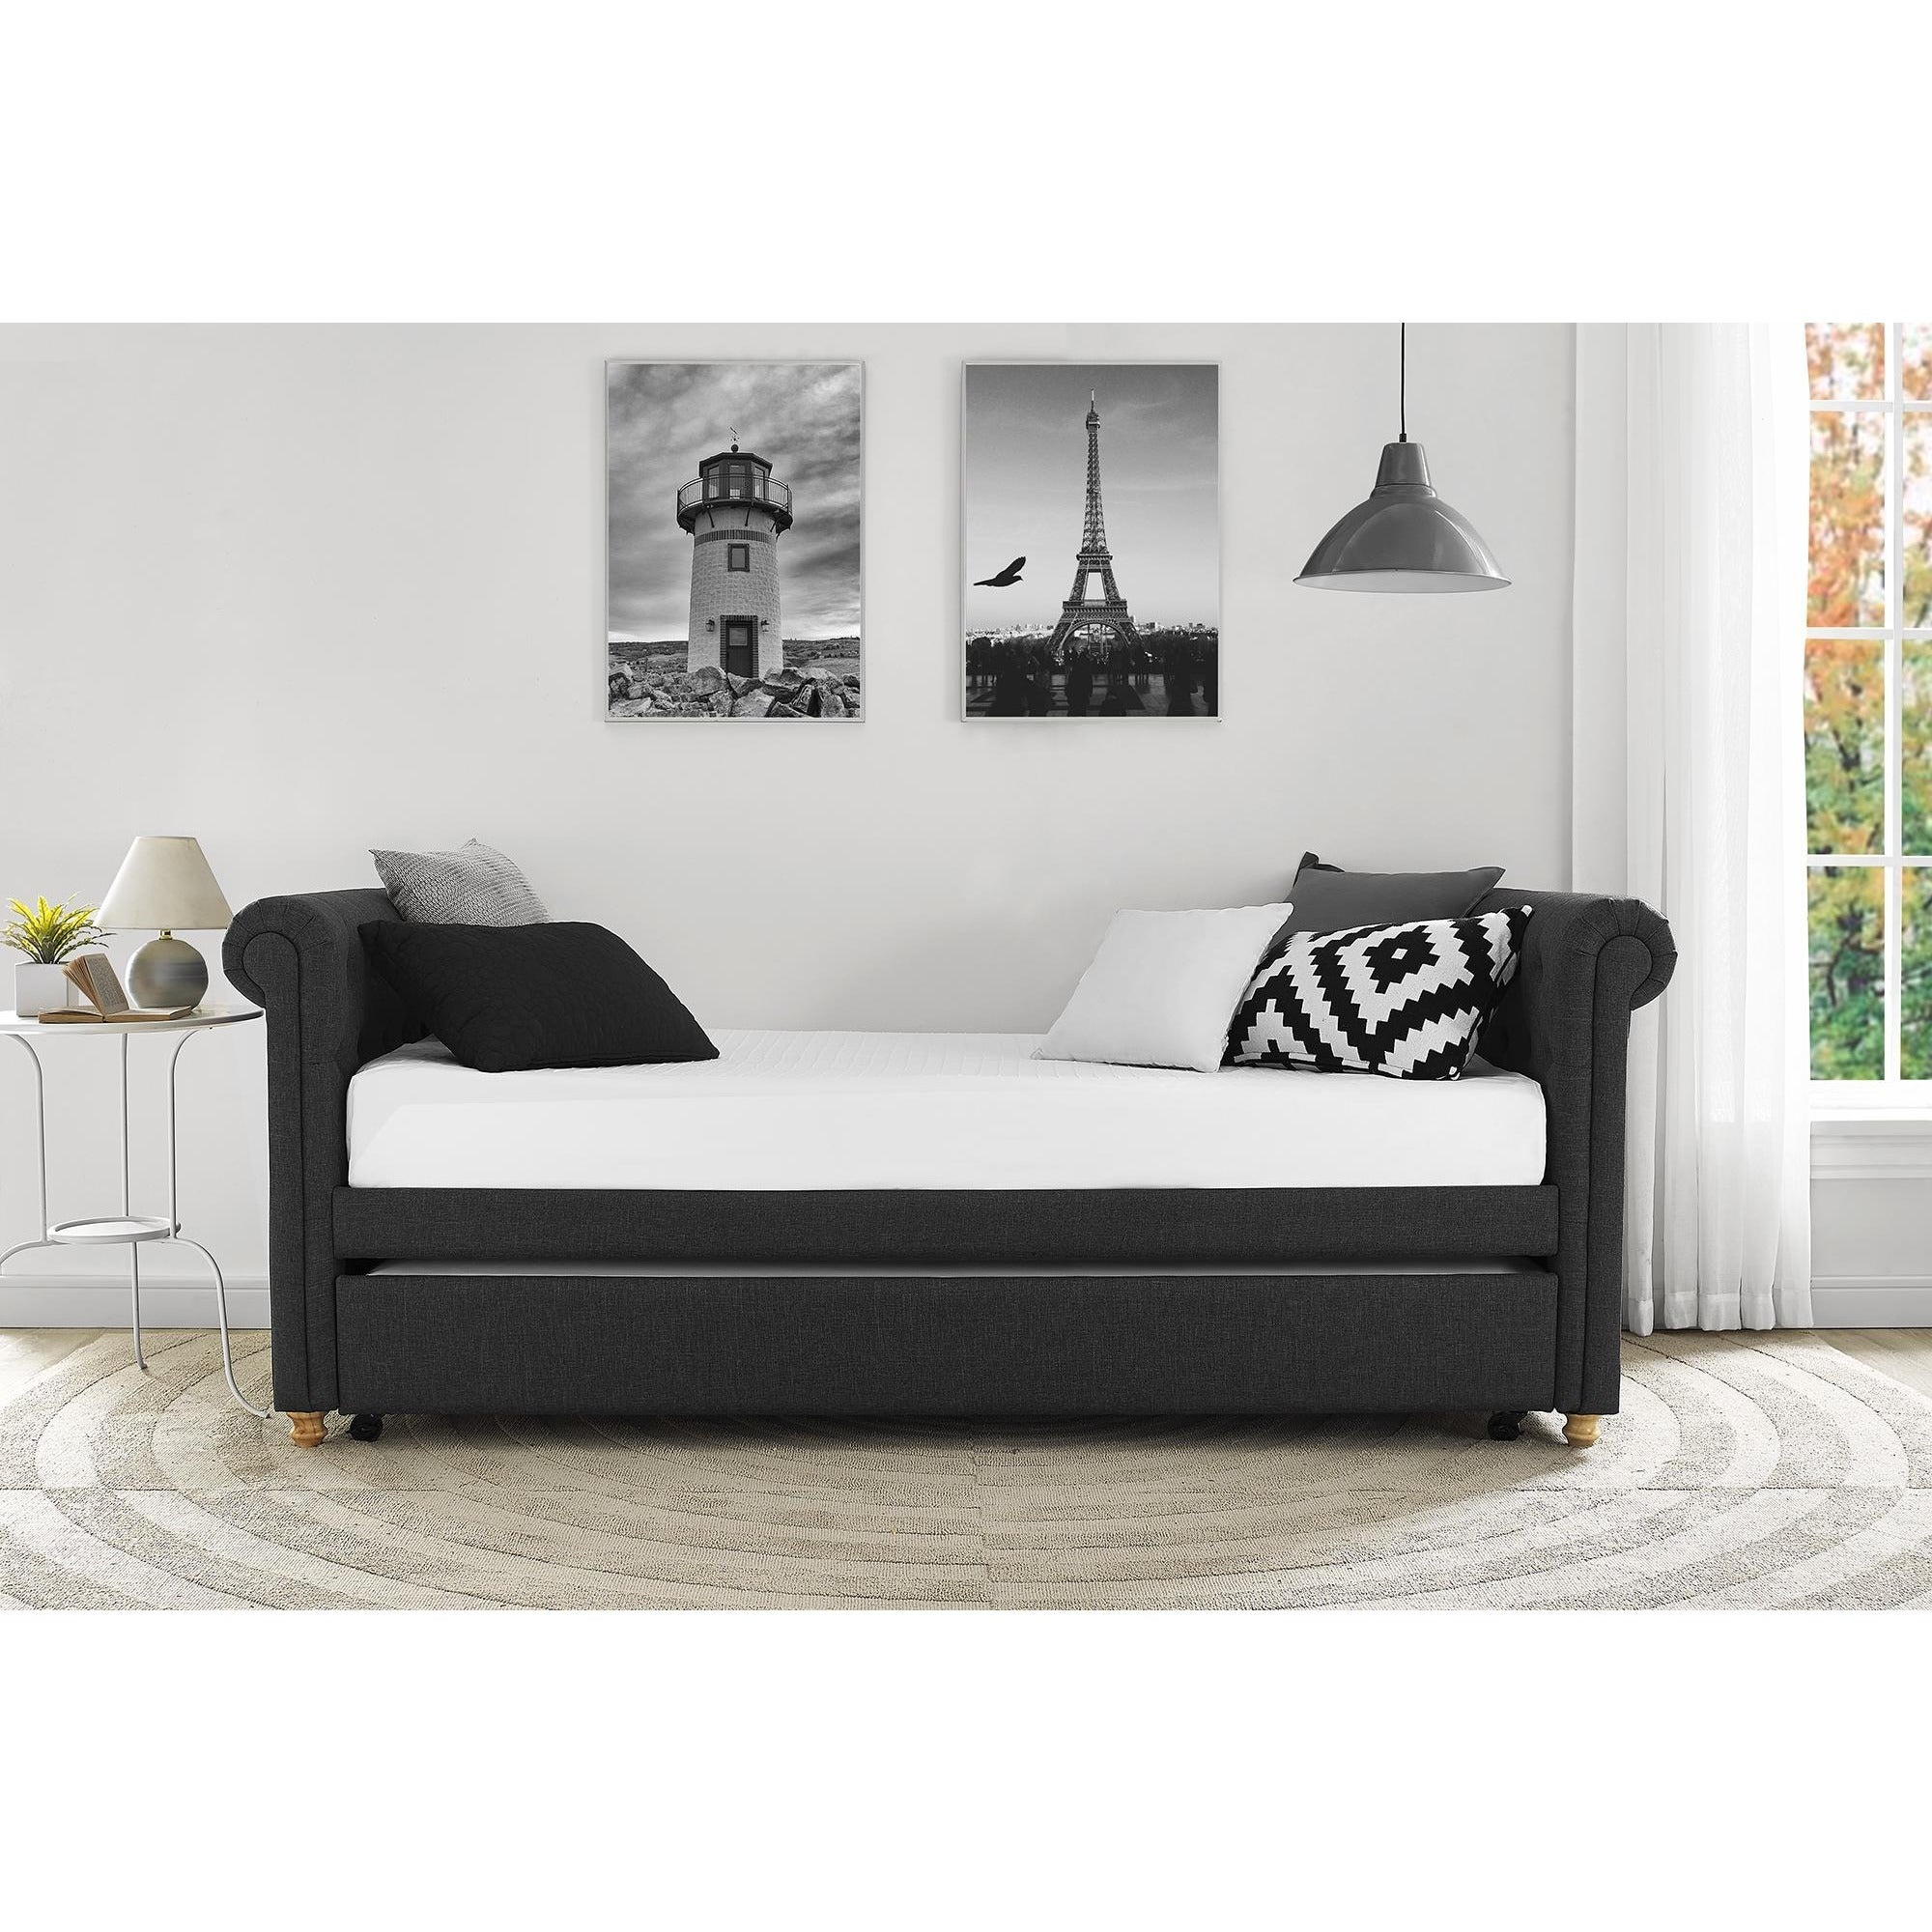 DHP Sophia Grey Linen Upholstered Daybed and Trundle (Day...